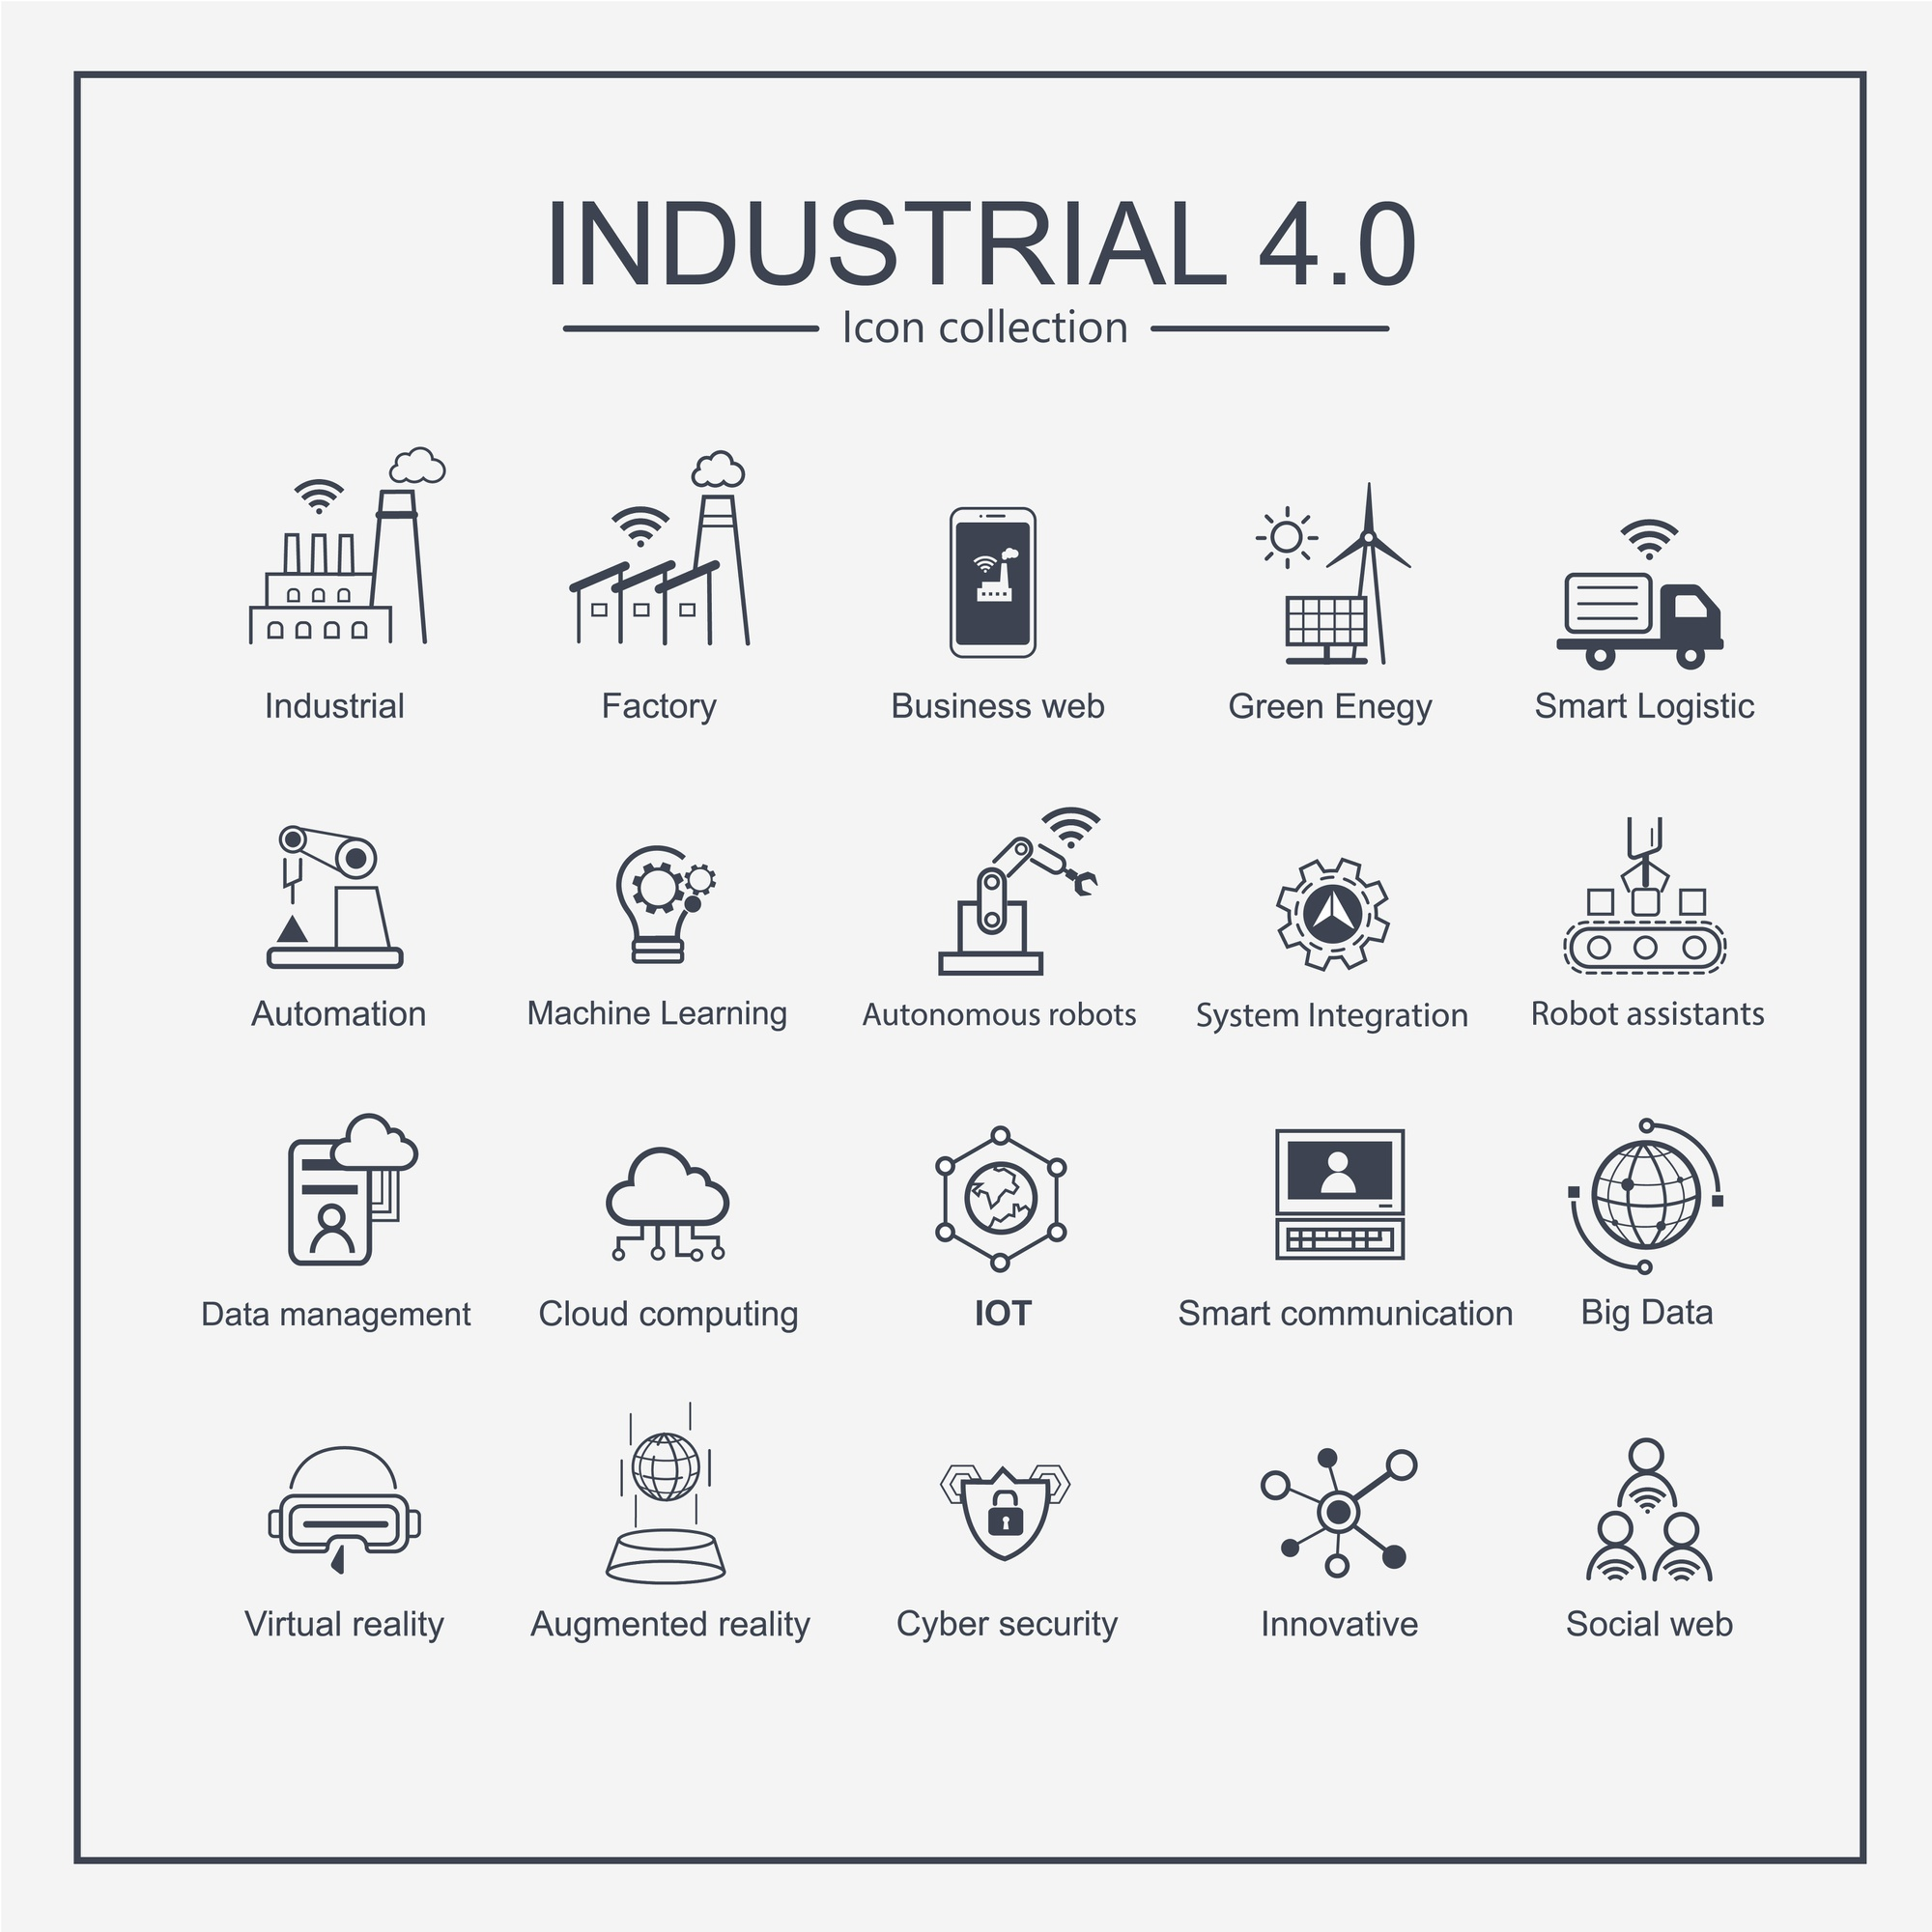 Industry 4.0 smart industrial productions icon set.